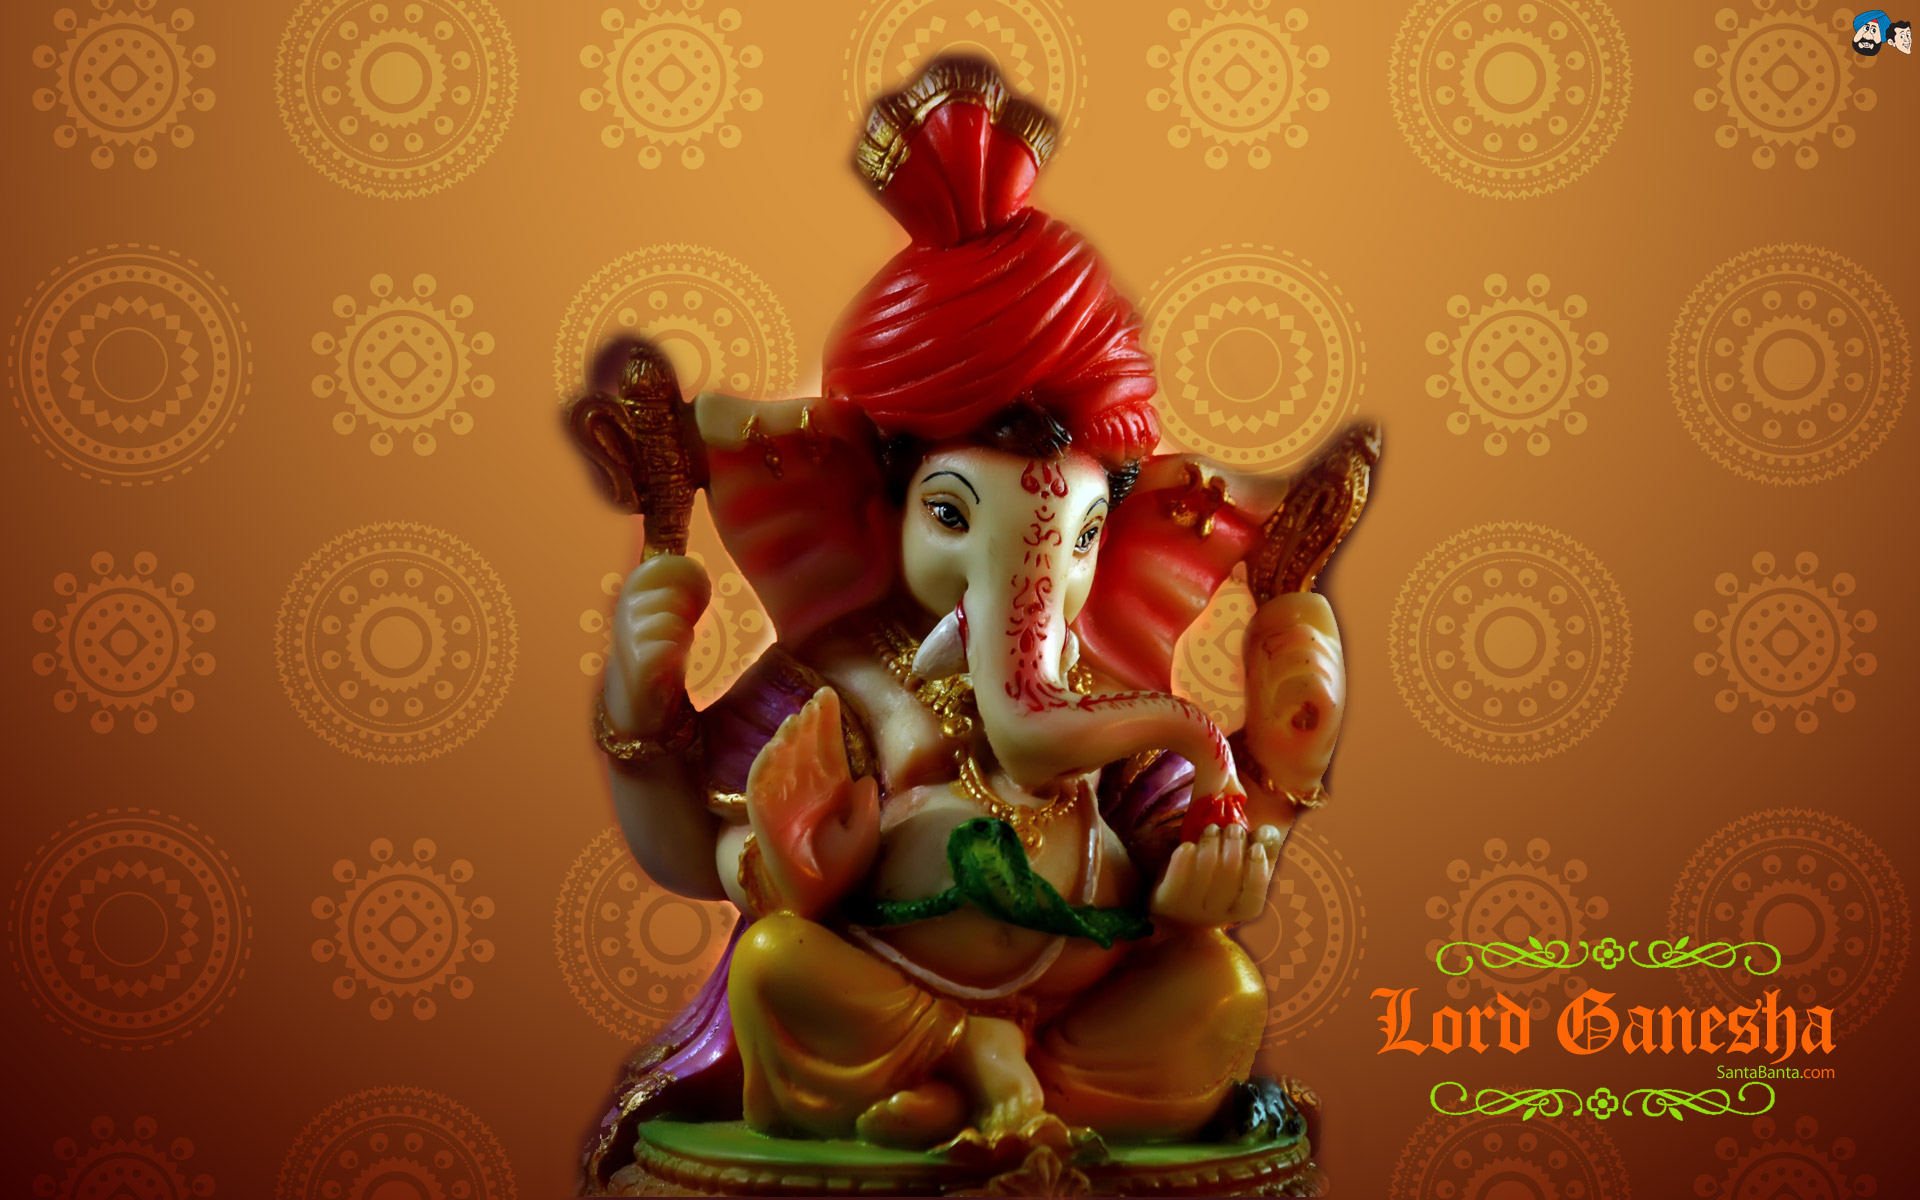 Must see Wallpaper Lord Vinayagar - Lord-Shree-Ganesh-HD-Images-Wallpapers-2016-Free-Download-10  Best Photo Reference_448122.jpg